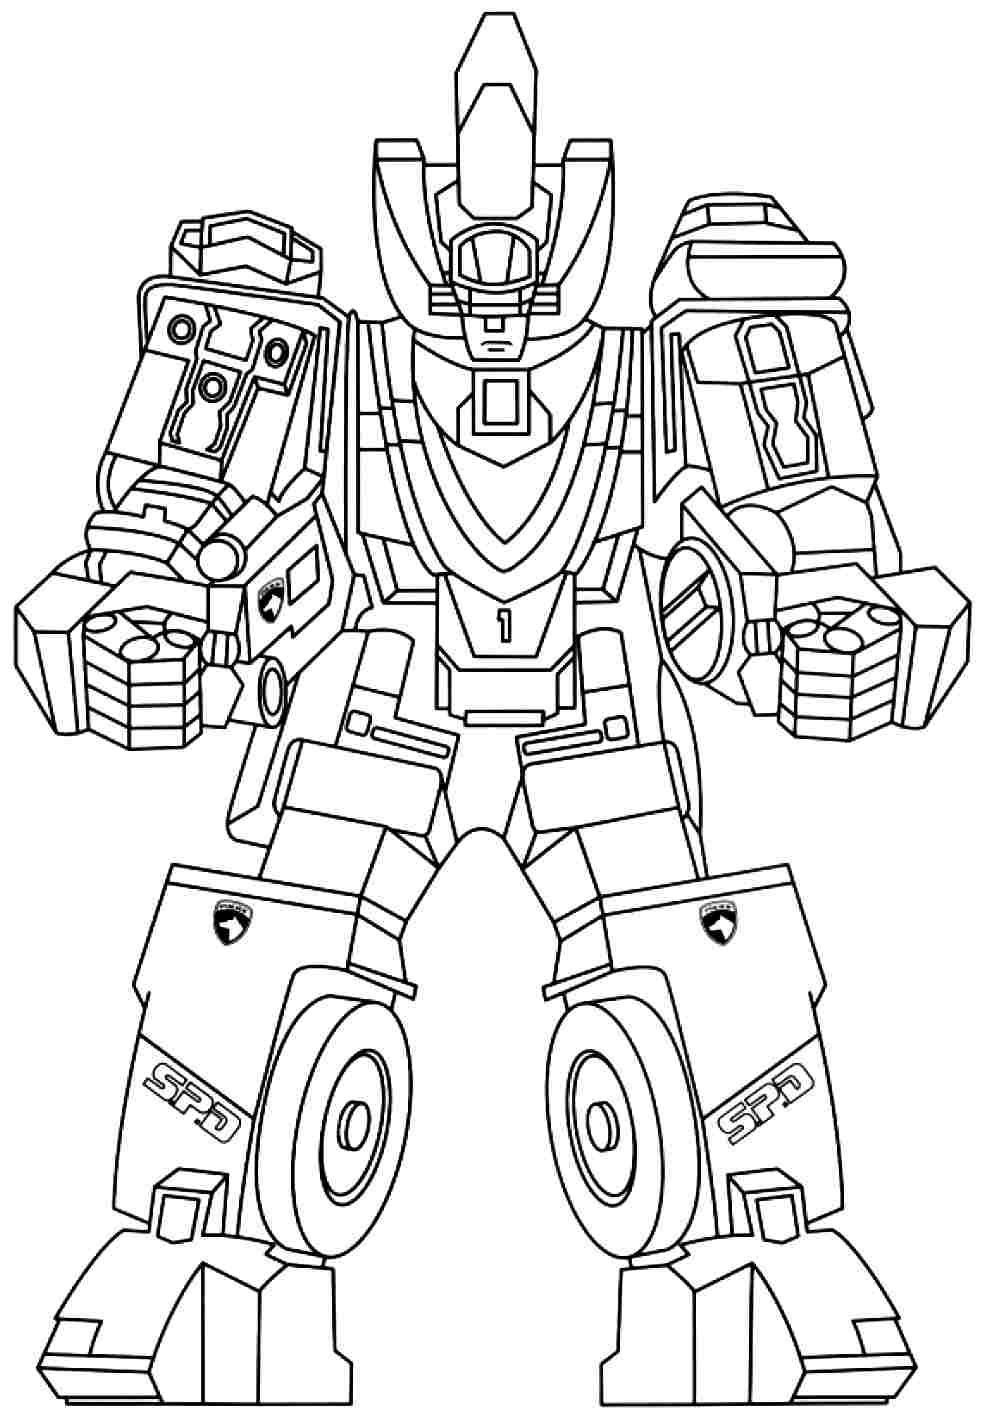 power rangers pictures to color basic power rangers coloring page power color rangers to pictures